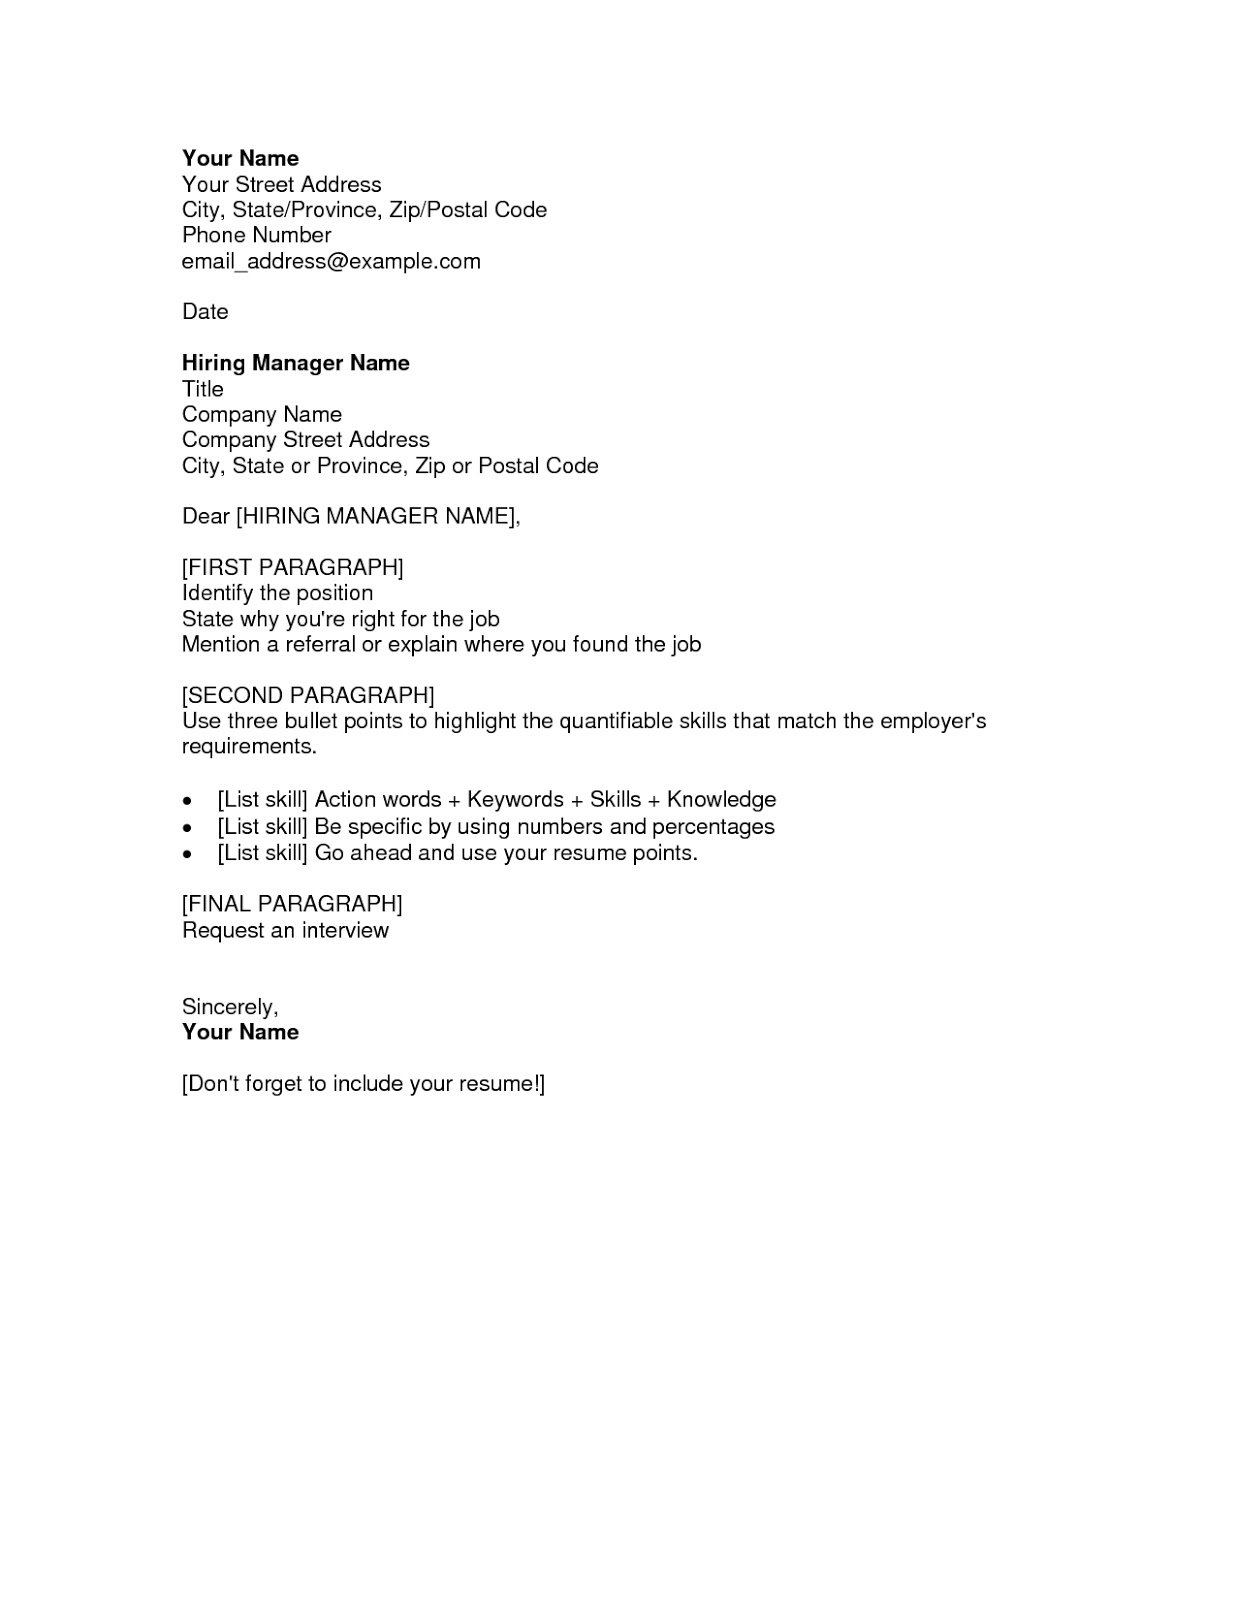 resume application letters